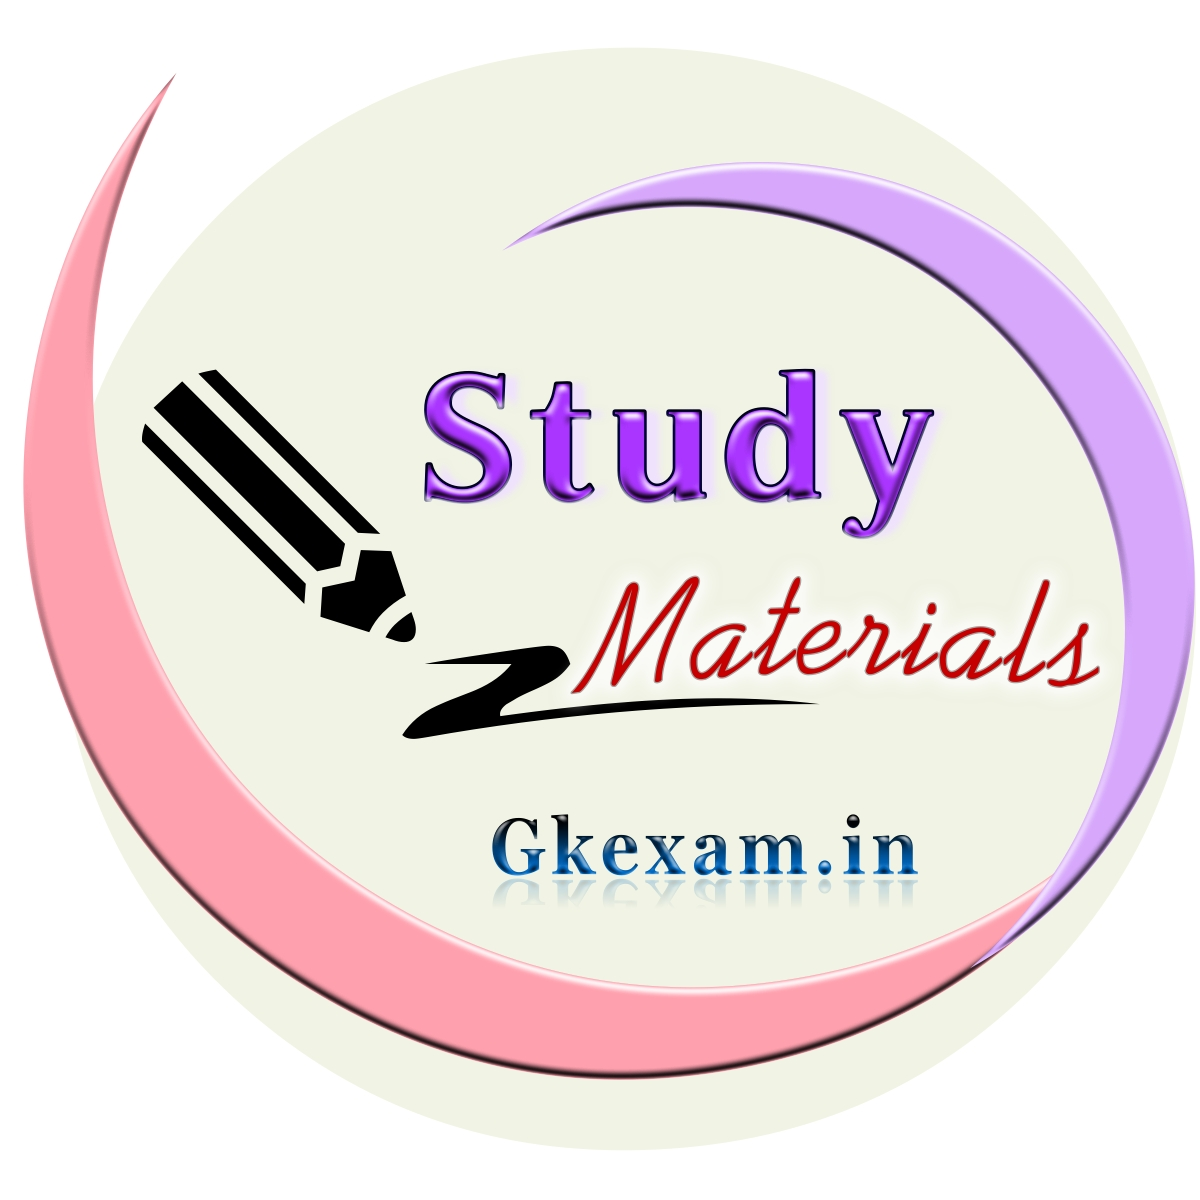 Std 5 Text Books, Std 5 Question Papers, Std 5 Ekam Kasoti Paper, Std 5 Home Learning Videos, Std 5 Poems